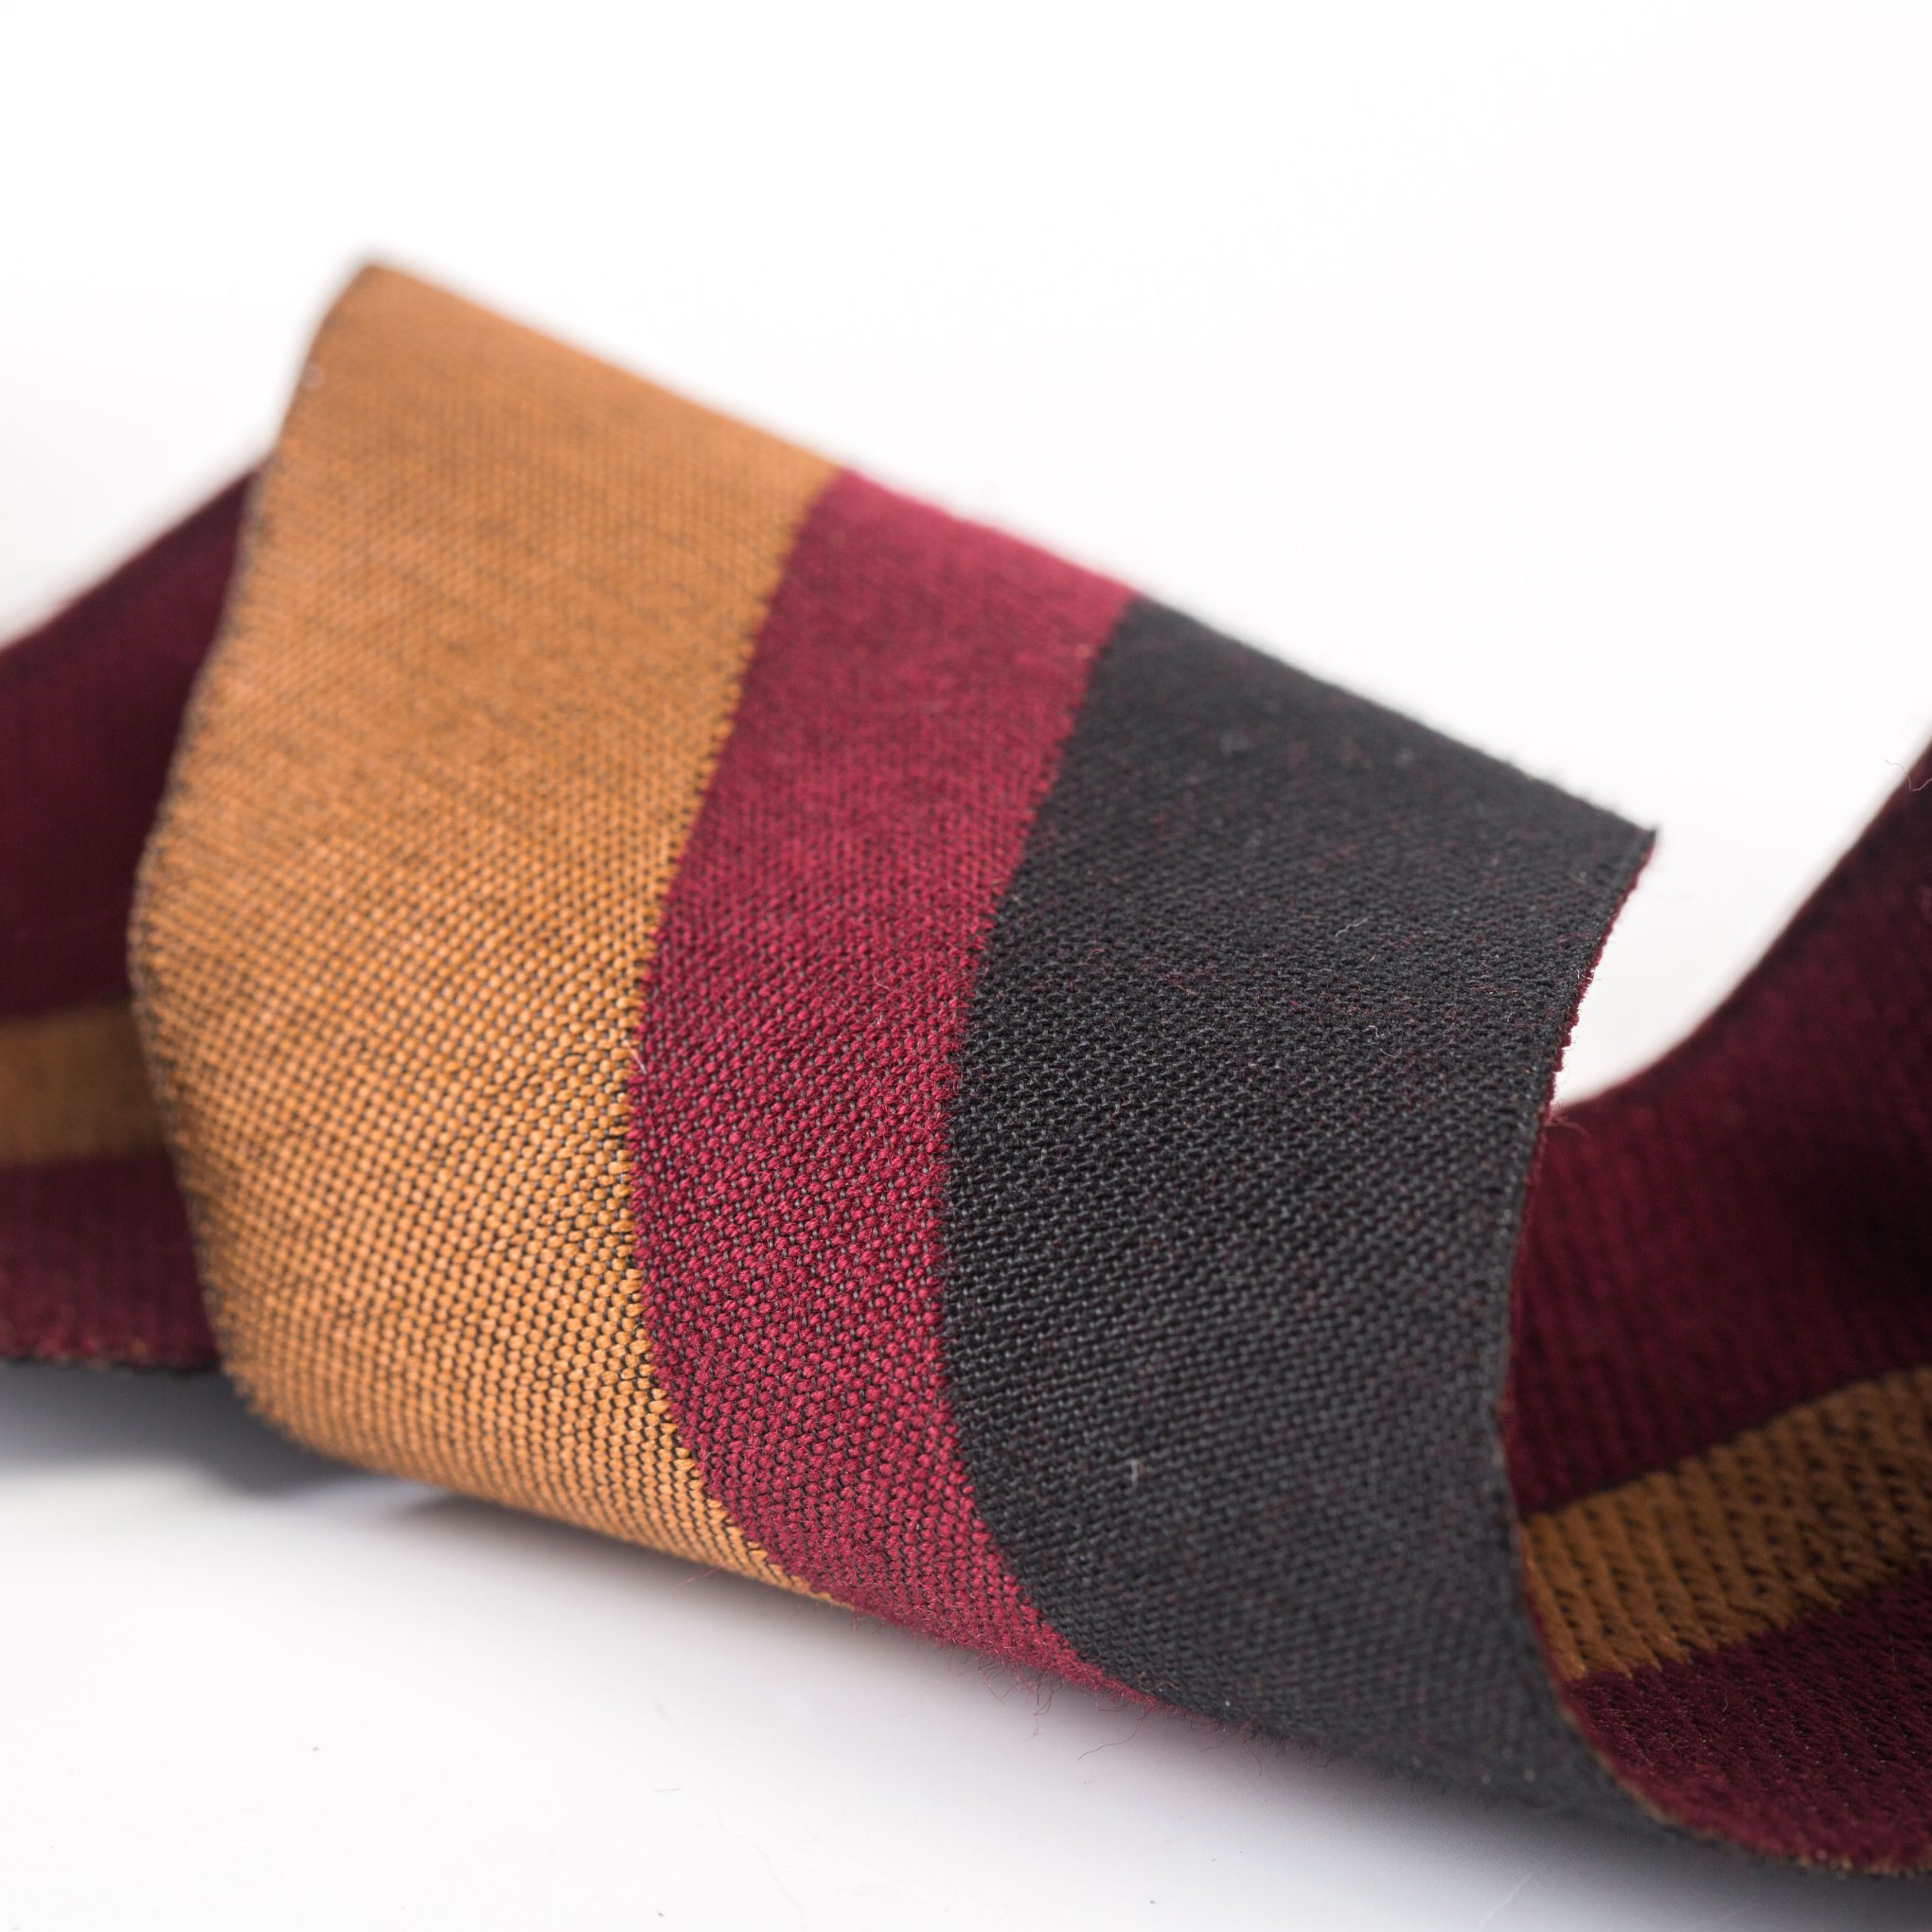 The Colorful Strips Mercerized Cotton Woven for Garments